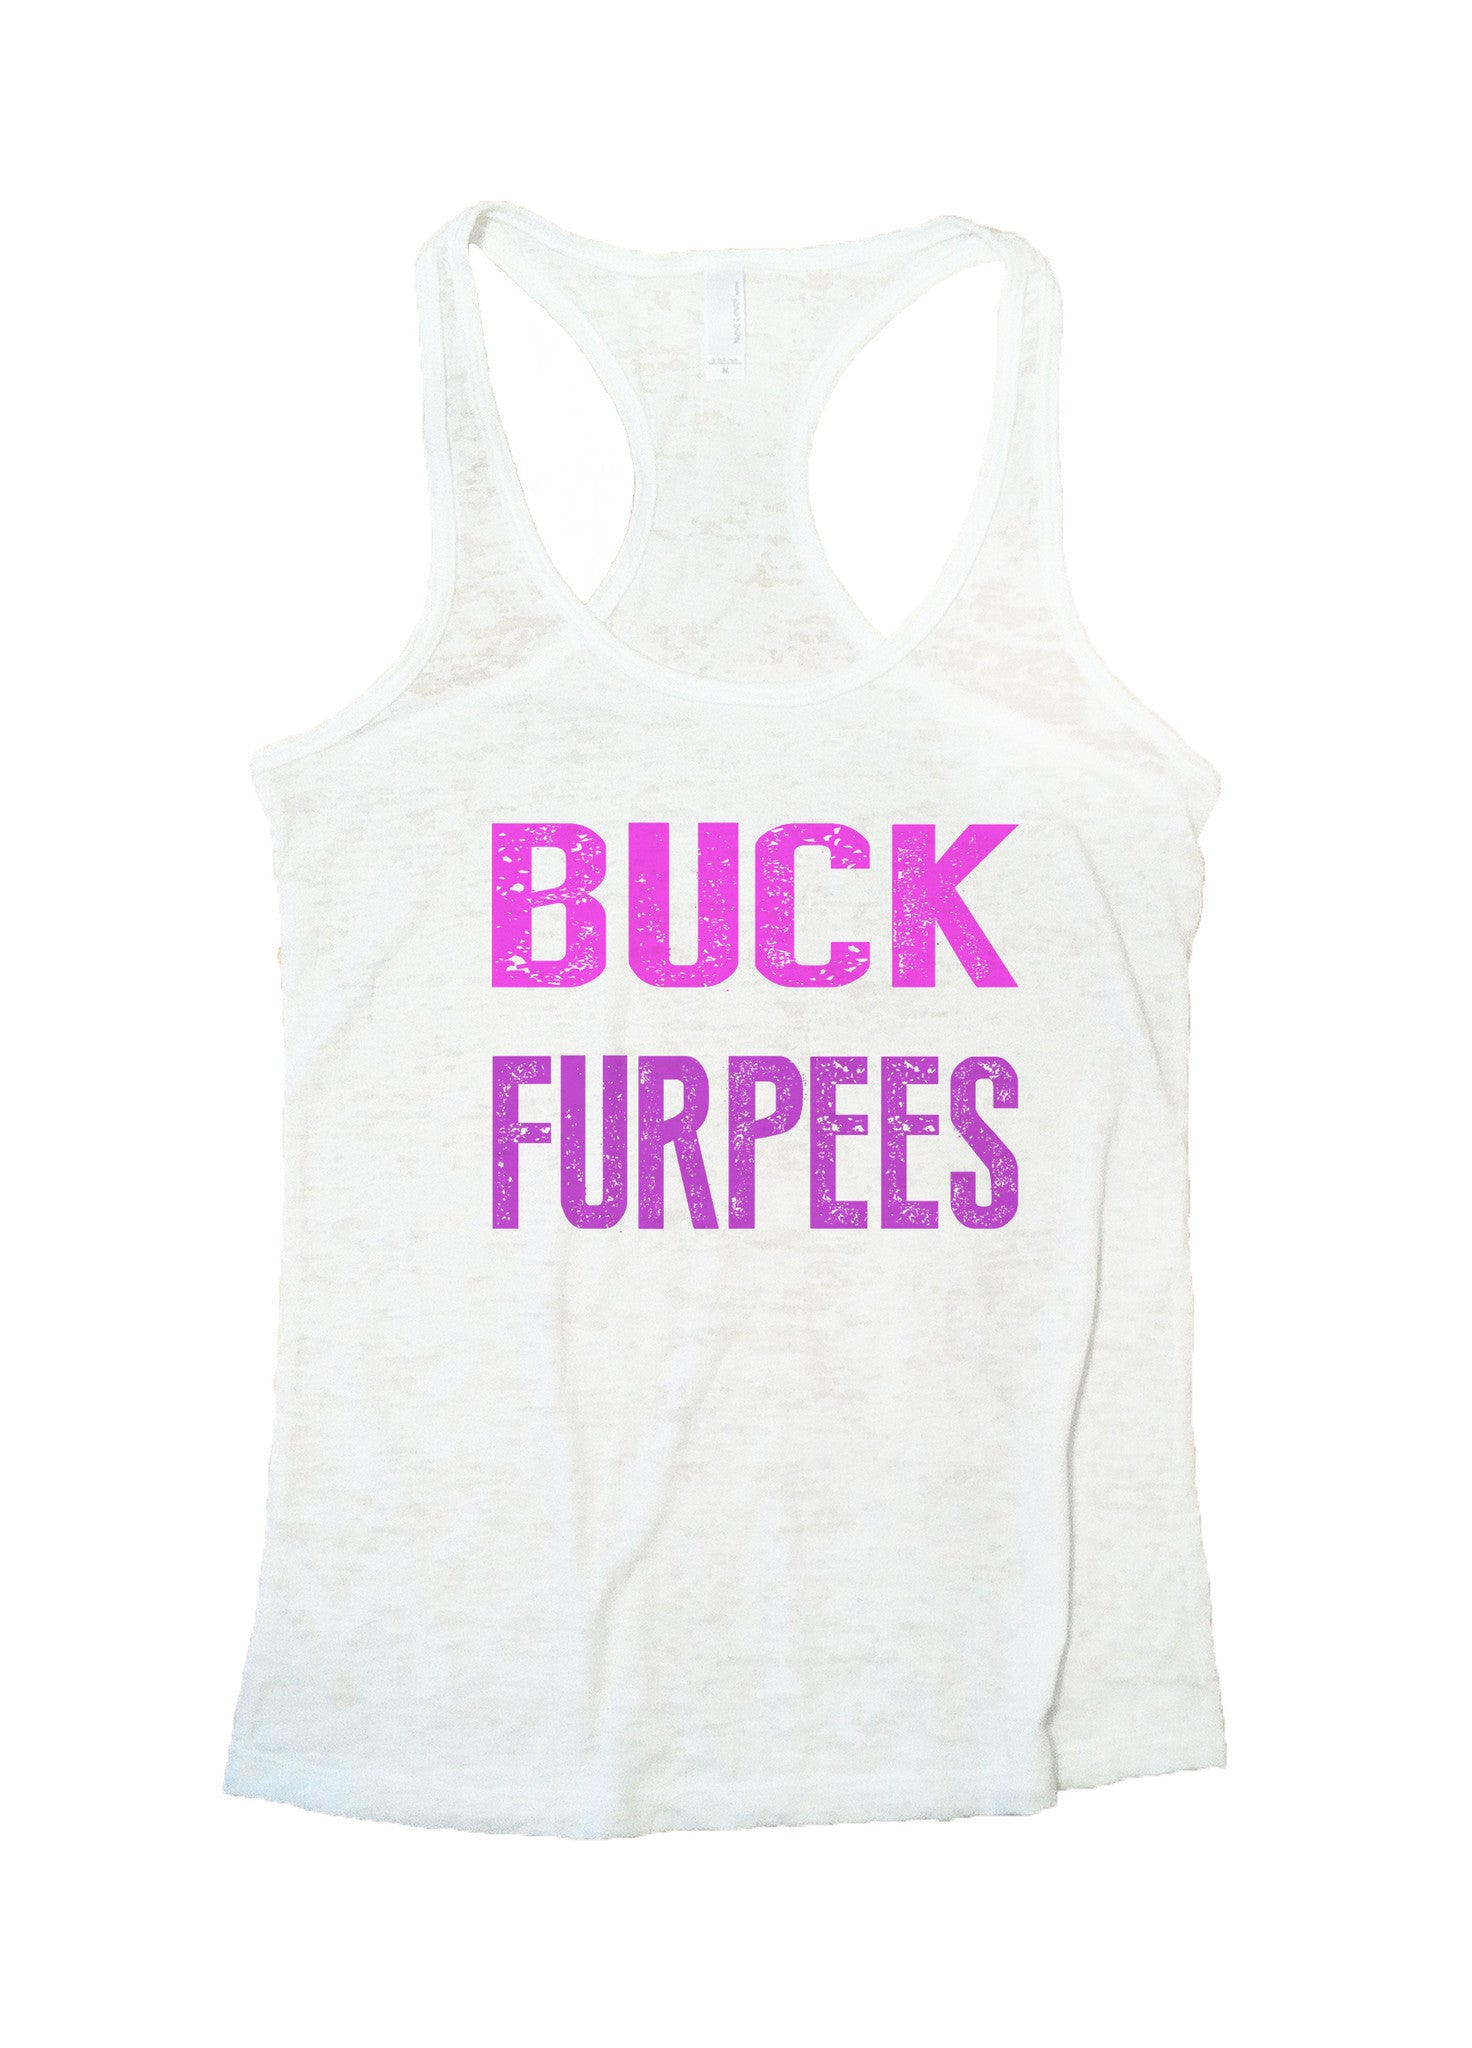 Buck Furpees Burnout Tank Top By BurnoutTankTops.com - 562 - Funny Shirts Tank Tops Burnouts and Triblends  - 5